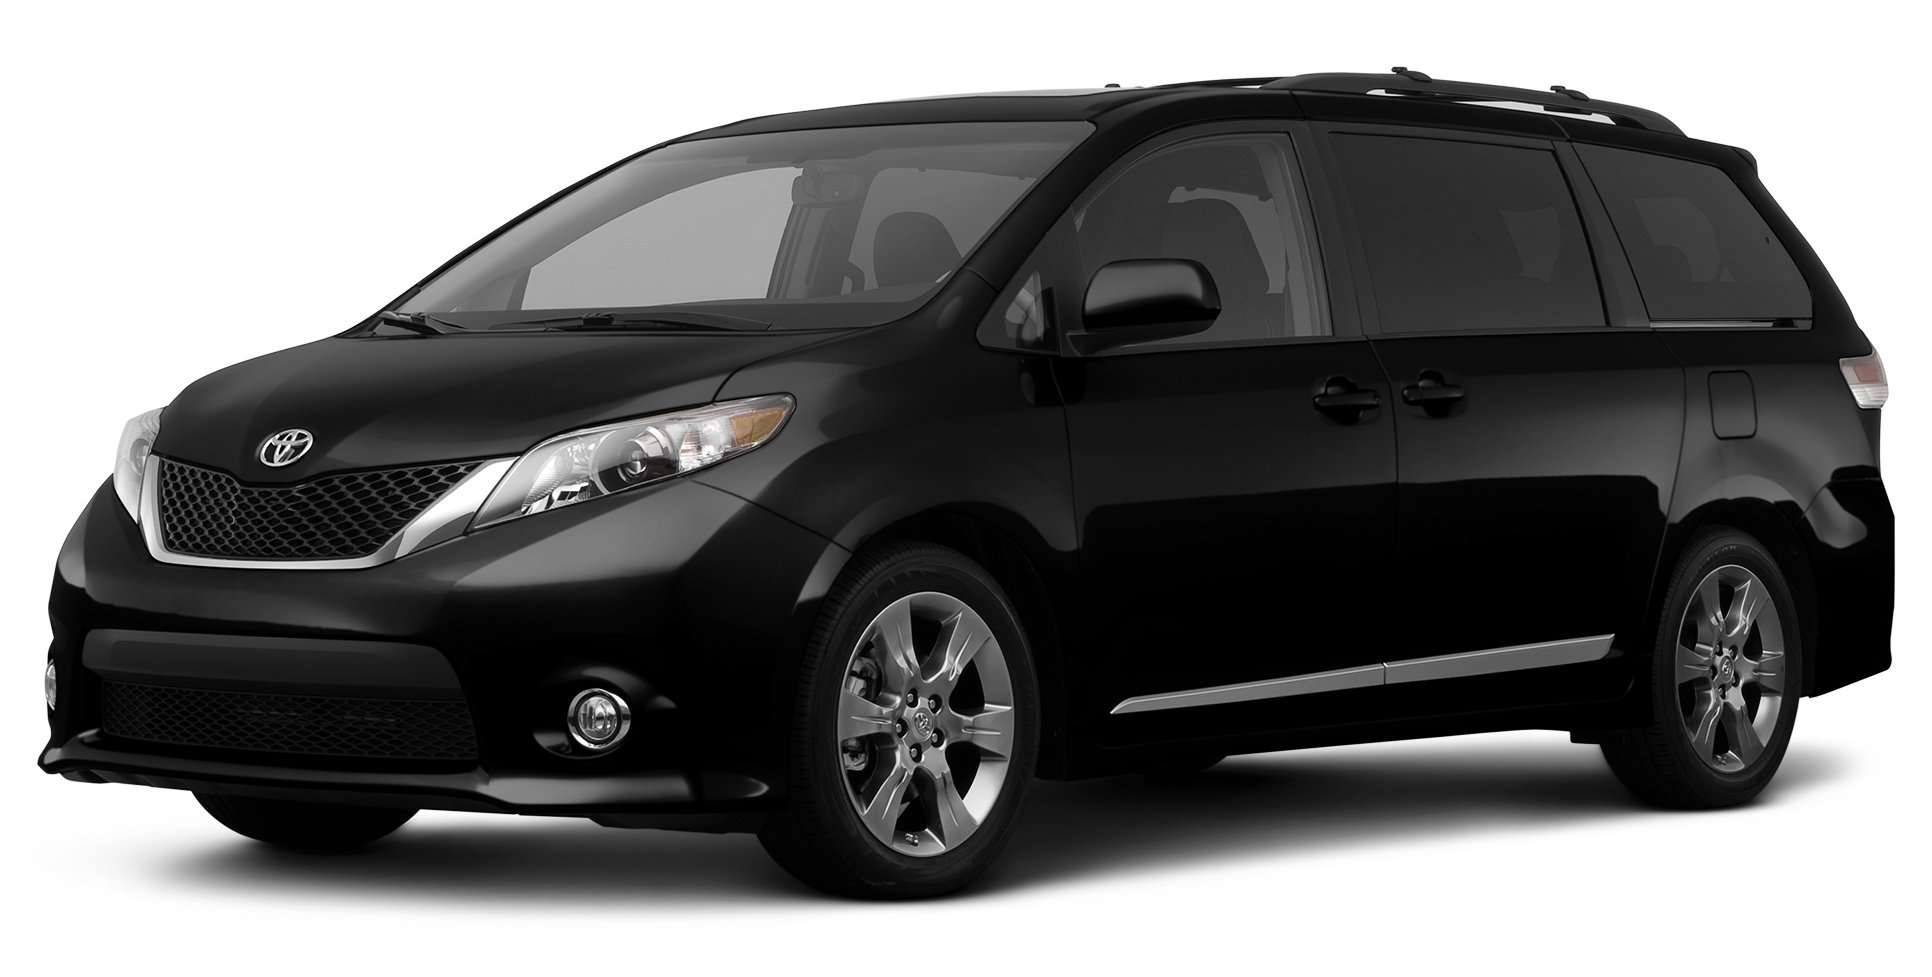 Toyota Sienna Service Manual: Transfer assembly